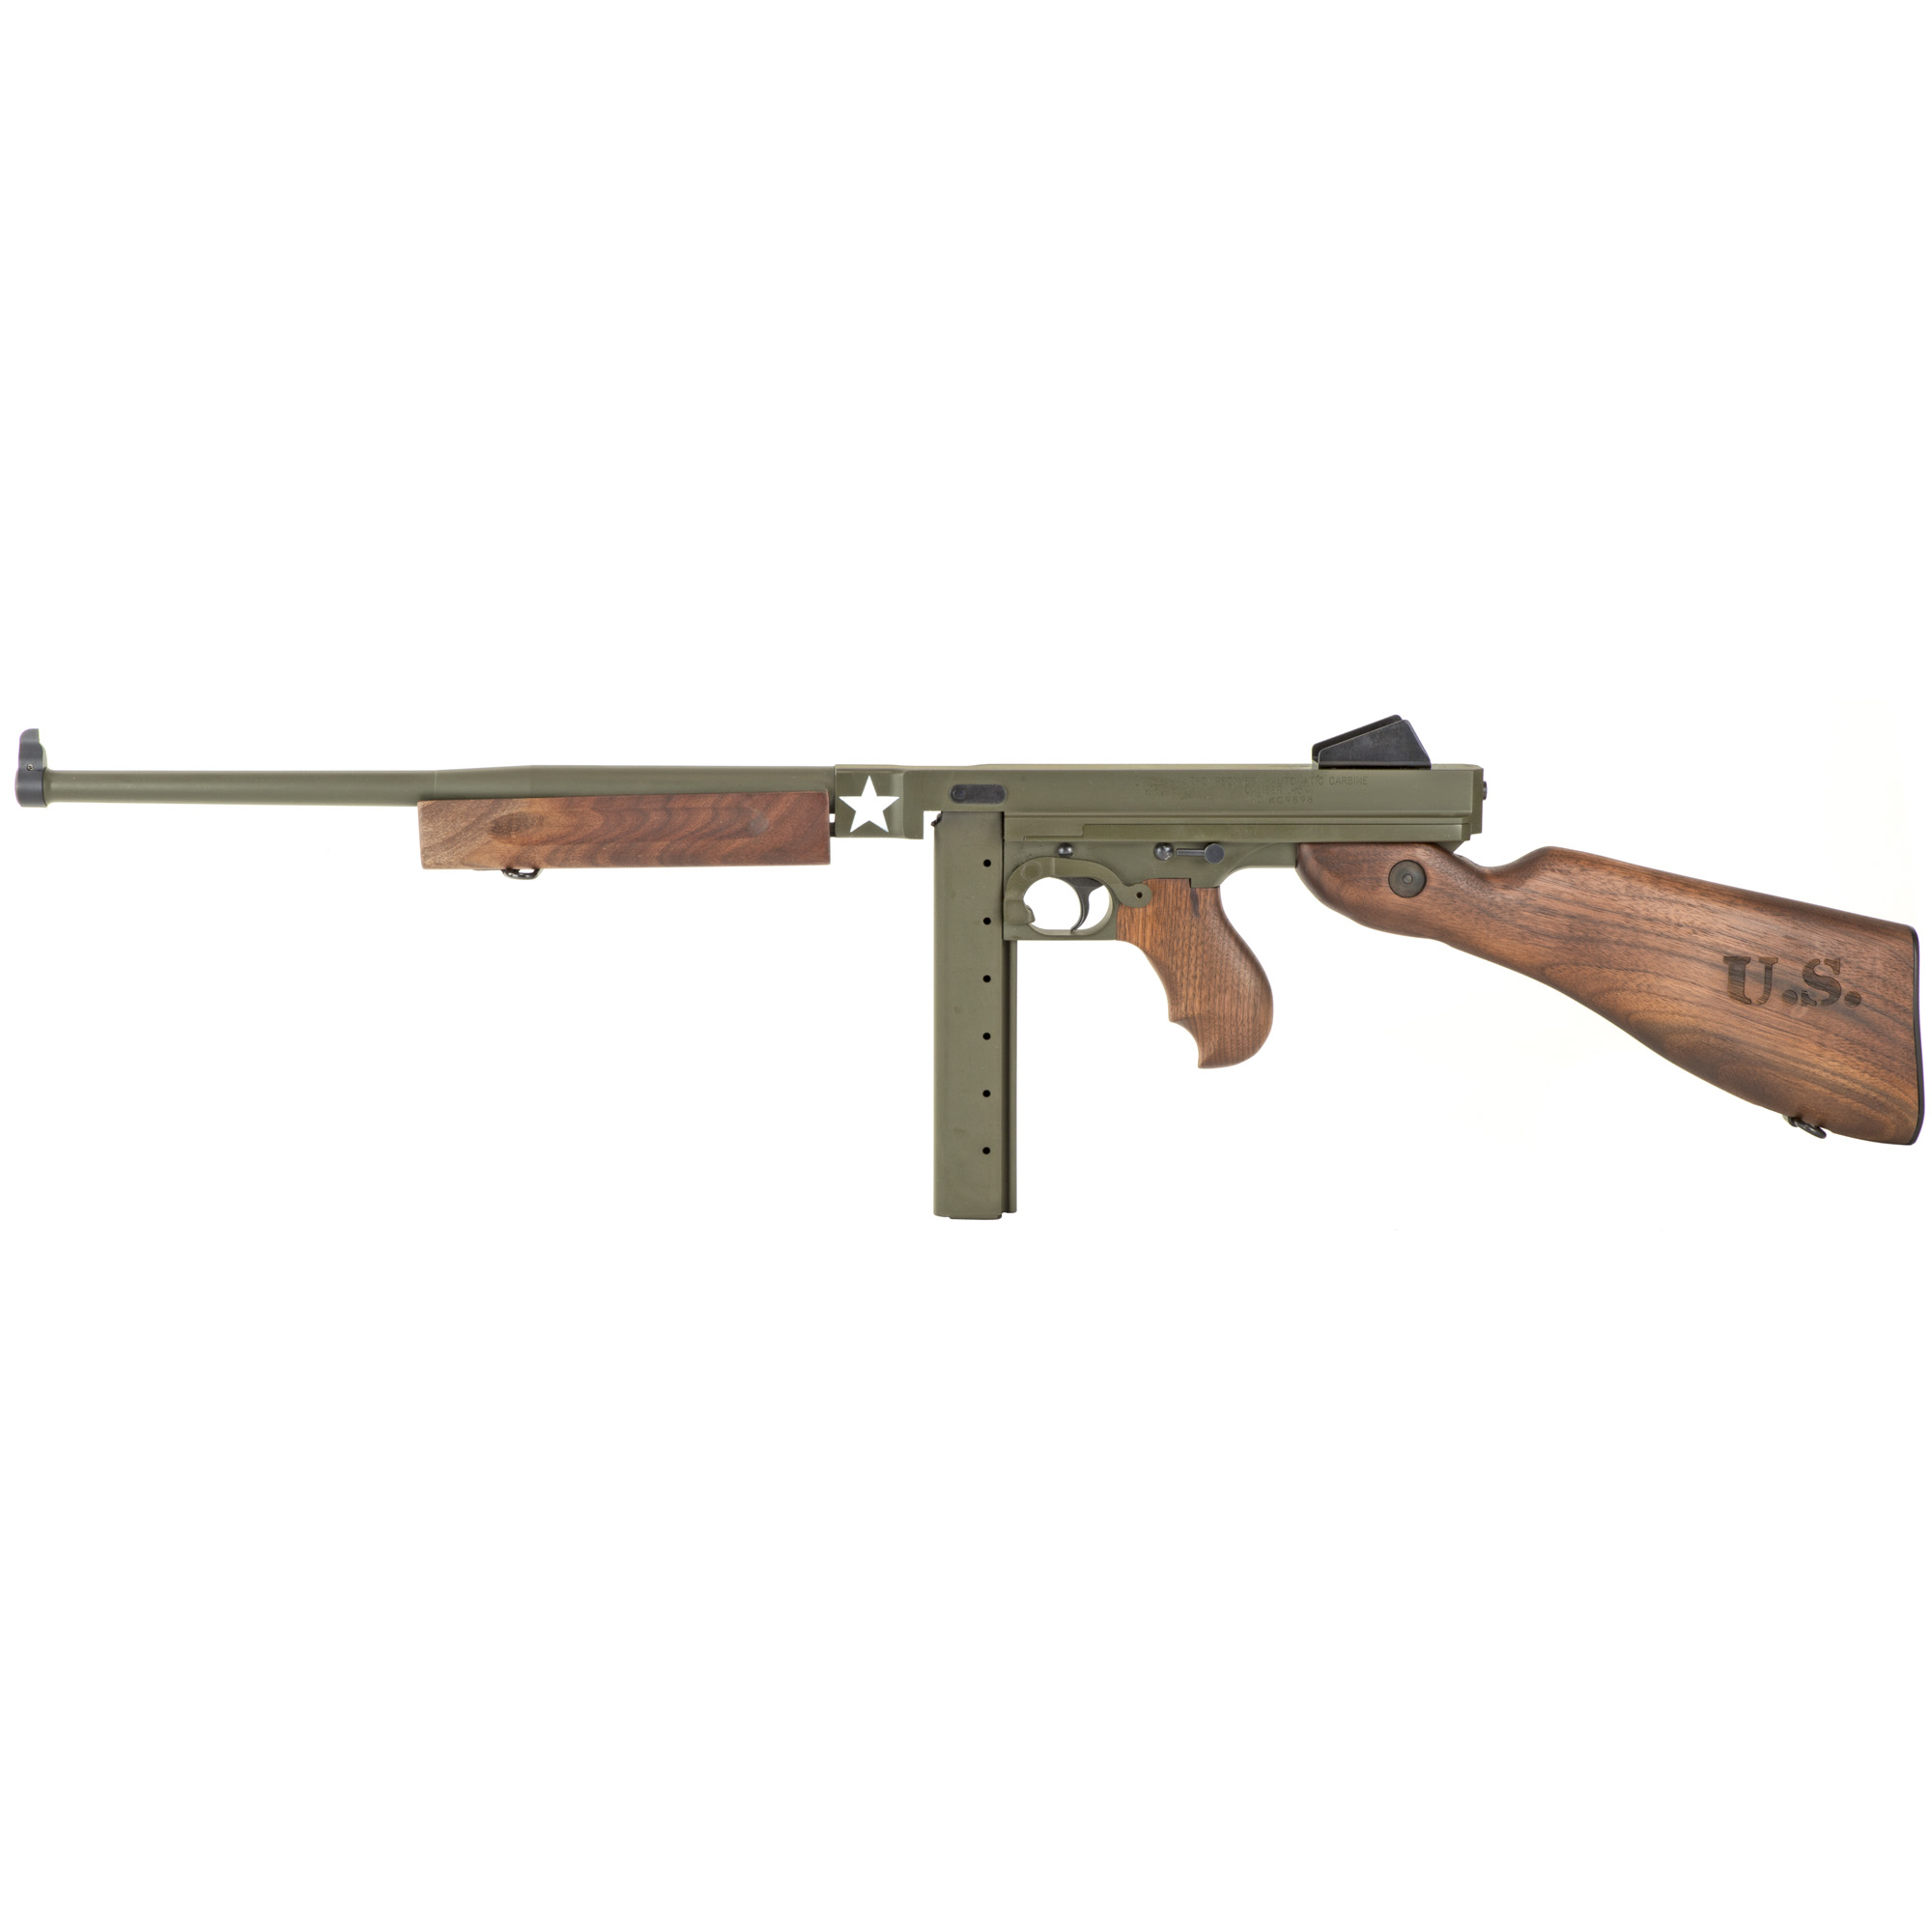 "The Thompson M1 was used victoriously in battles throughout the world"" inscribing its place for all time as a legend among military firearms."